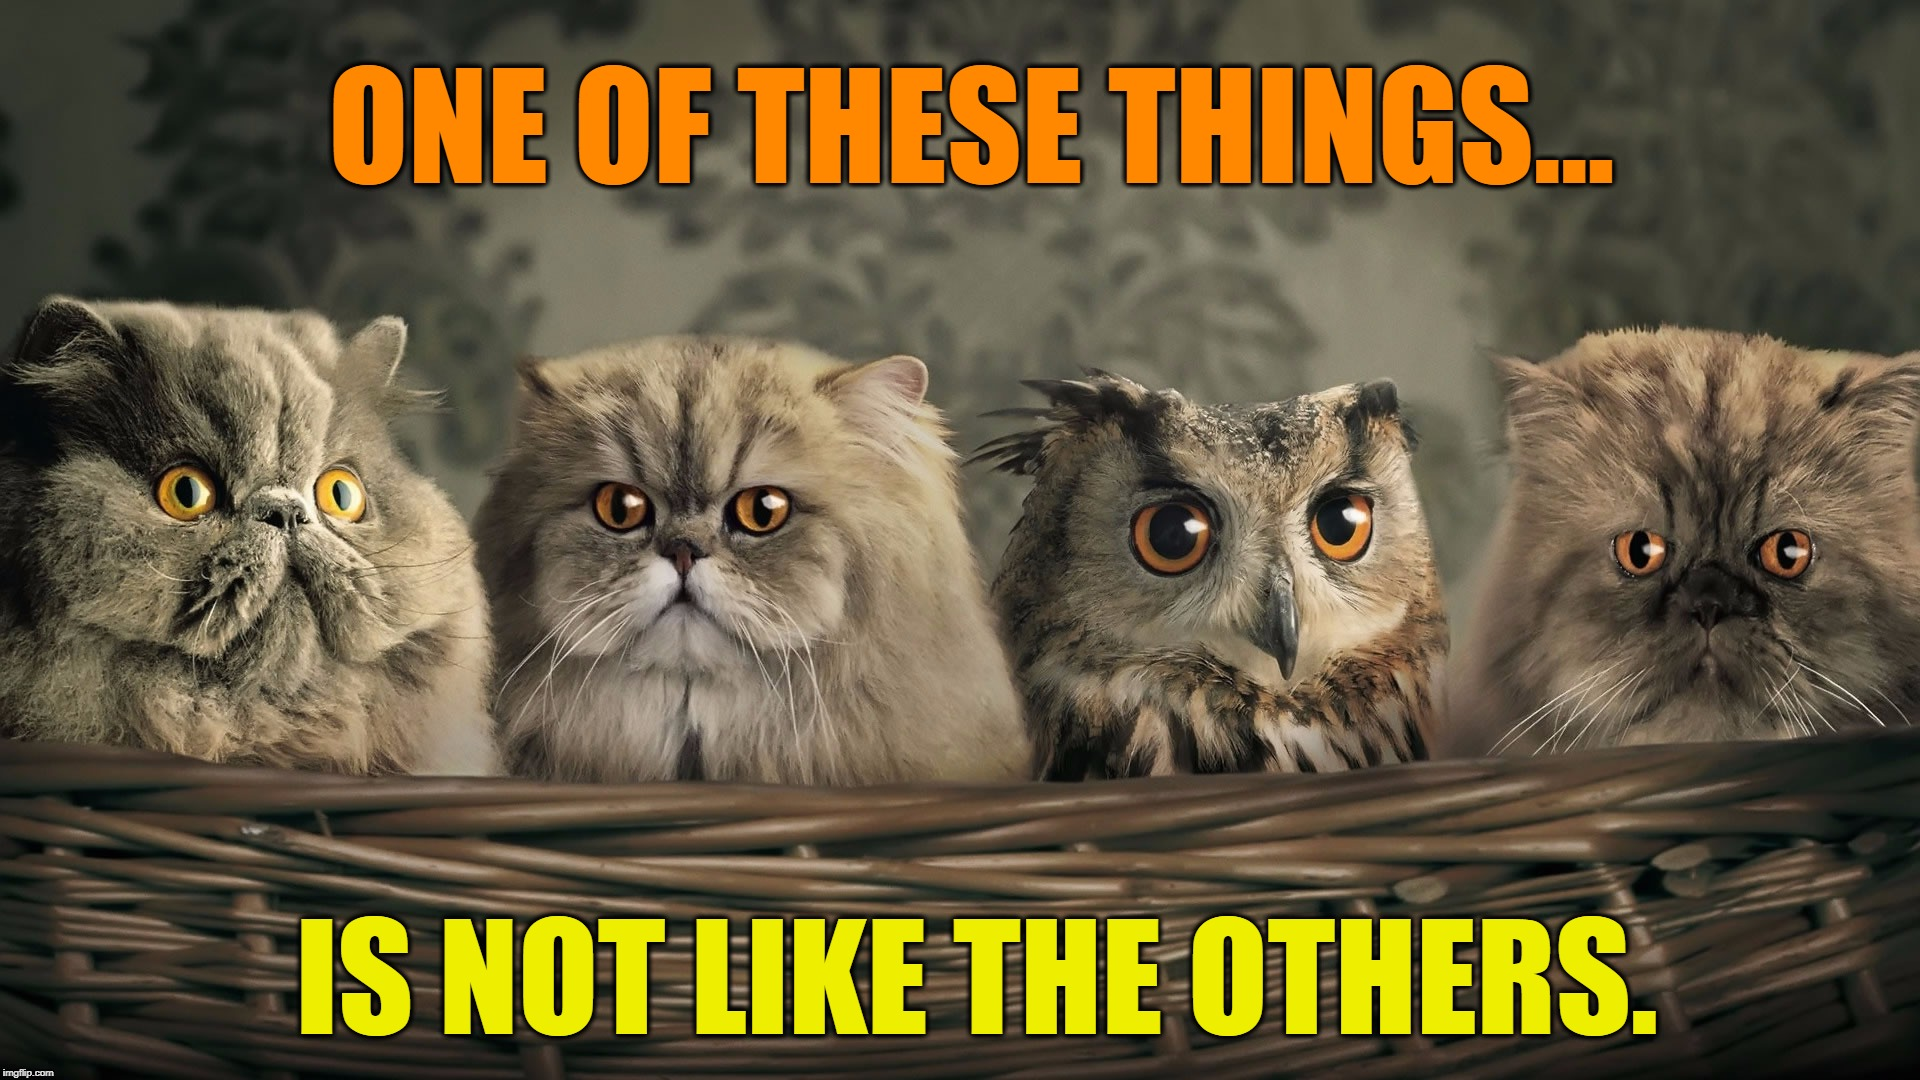 Who Let the Cats Out? | ONE OF THESE THINGS... IS NOT LIKE THE OTHERS. | image tagged in vince vance,cat memes,baby owl,owls,cute animals,cute cats | made w/ Imgflip meme maker